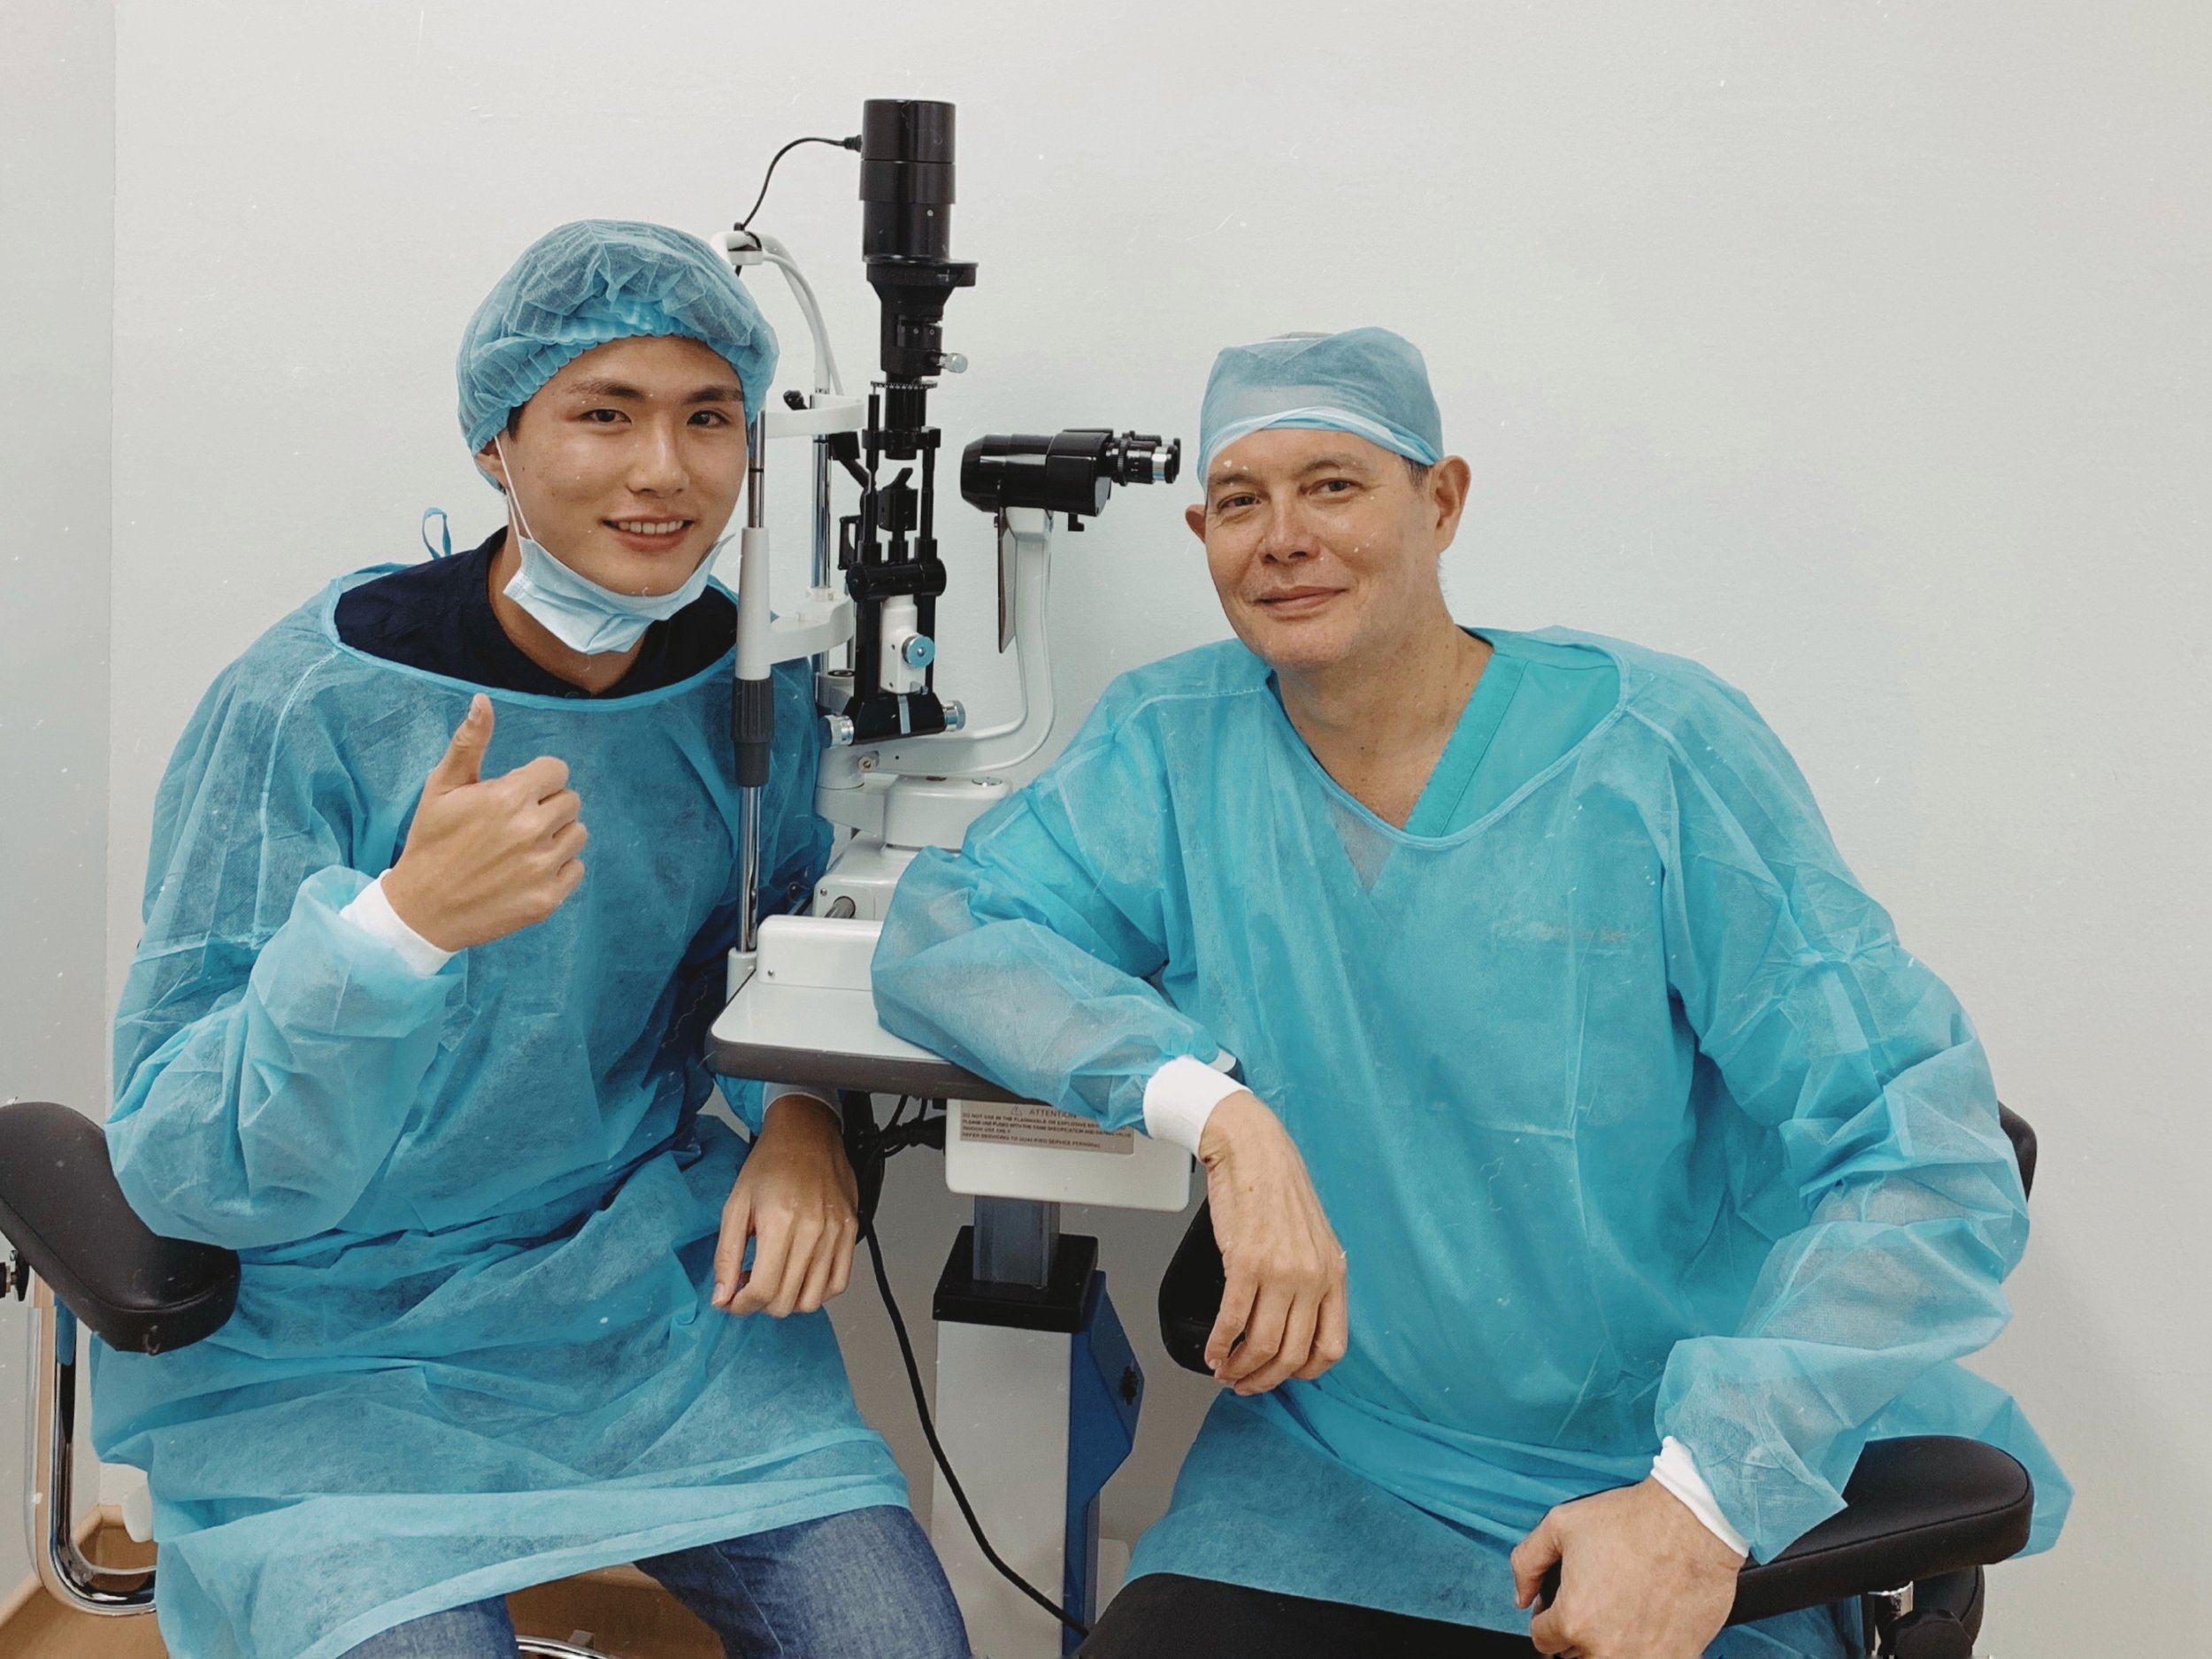 Photo with Dr Marc Tay right after the surgery. He did a check under the scope to ensure everything was fine before I was discharged.